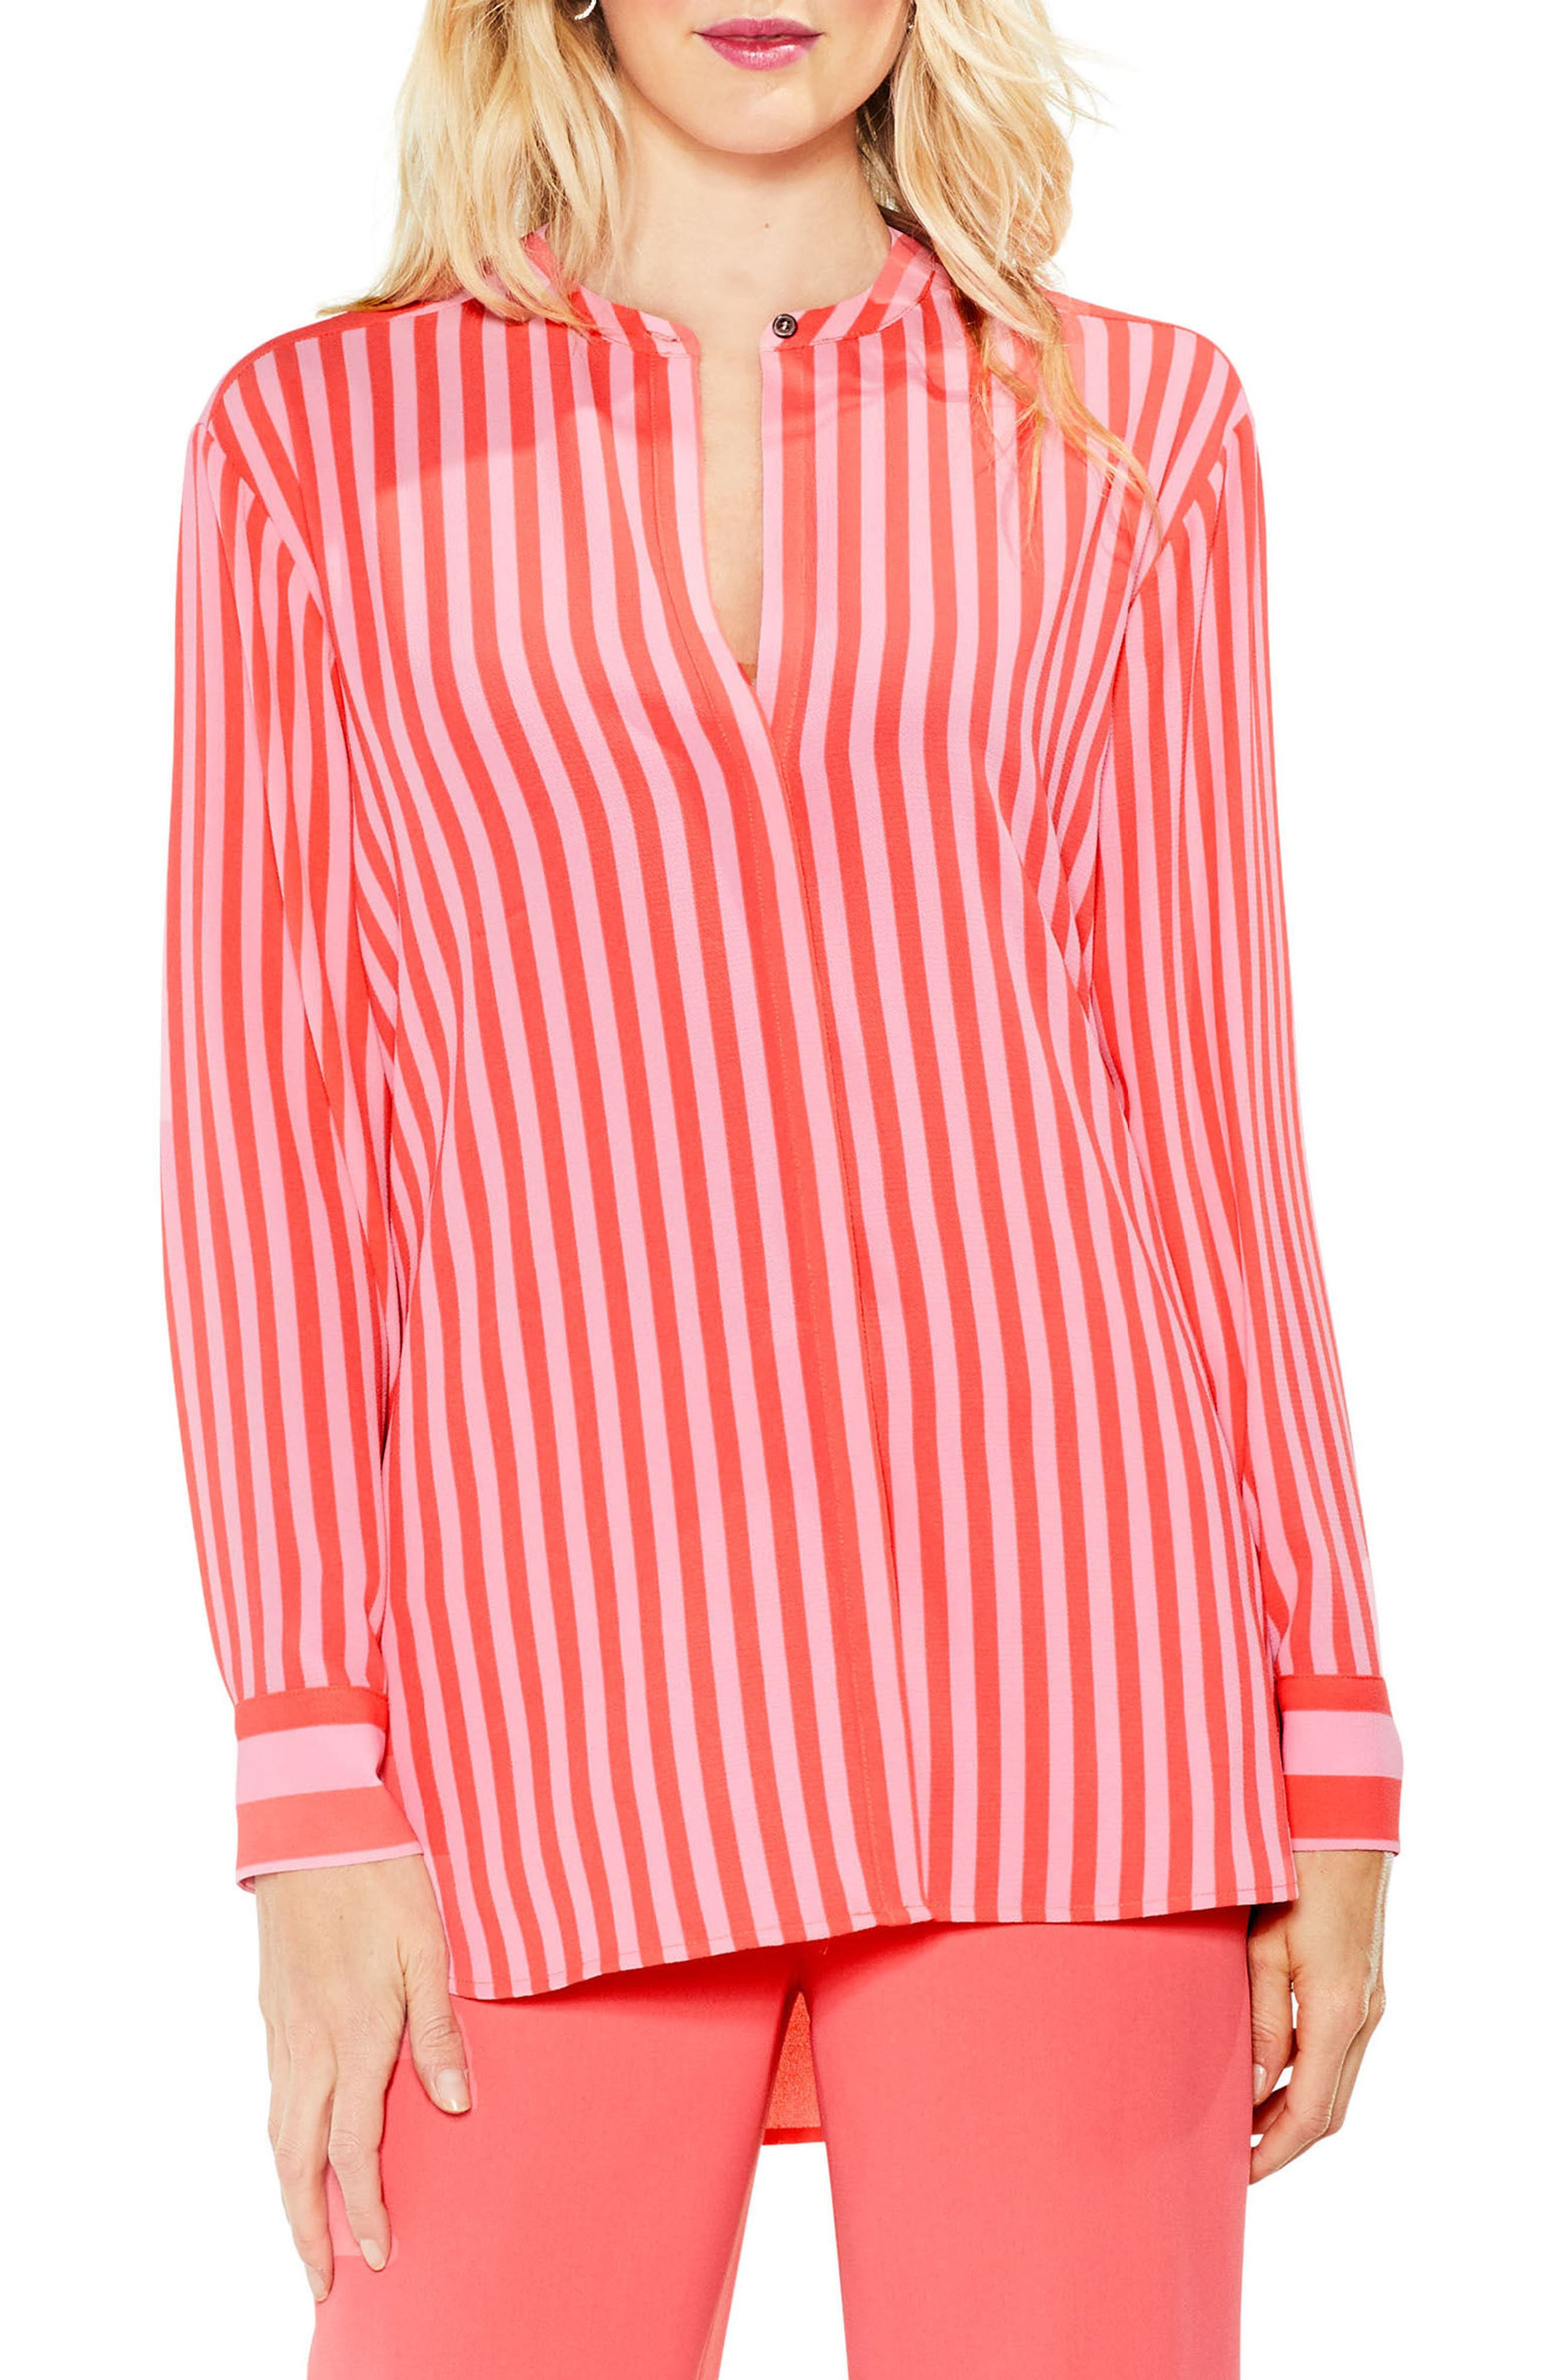 Alternate Image 1 Selected - Vince Camuto Debut Mix Stripe Tunic